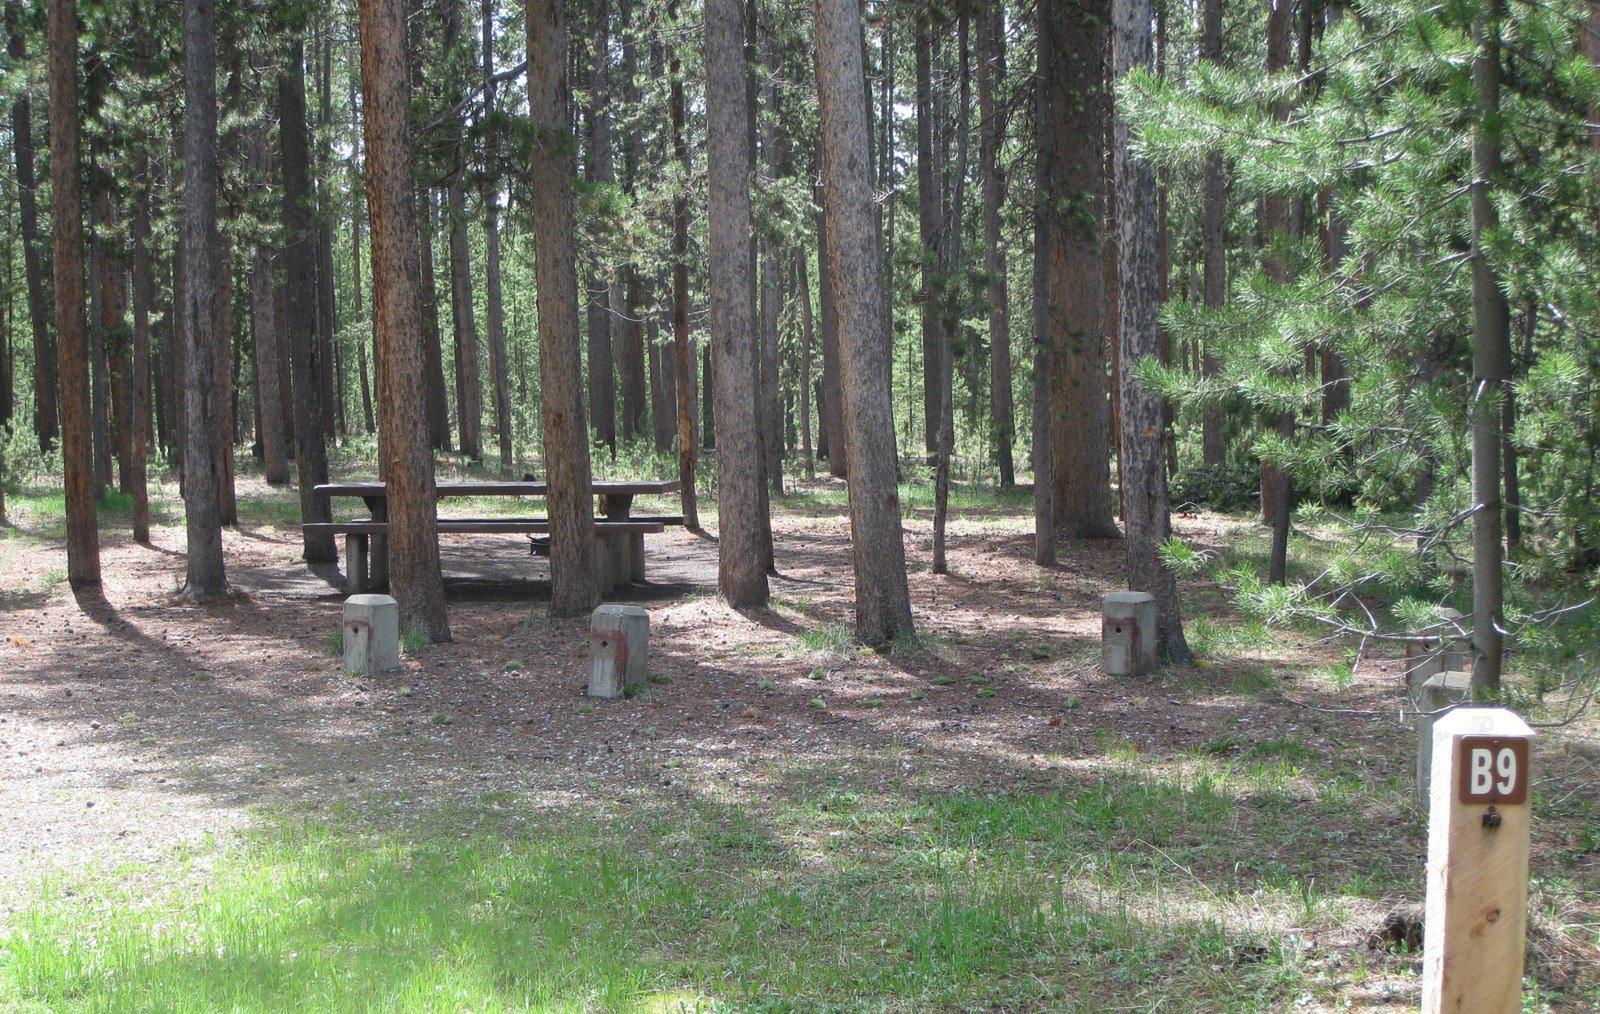 Site B9, surrounded by pine trees, picnic table & fire ringSite B9